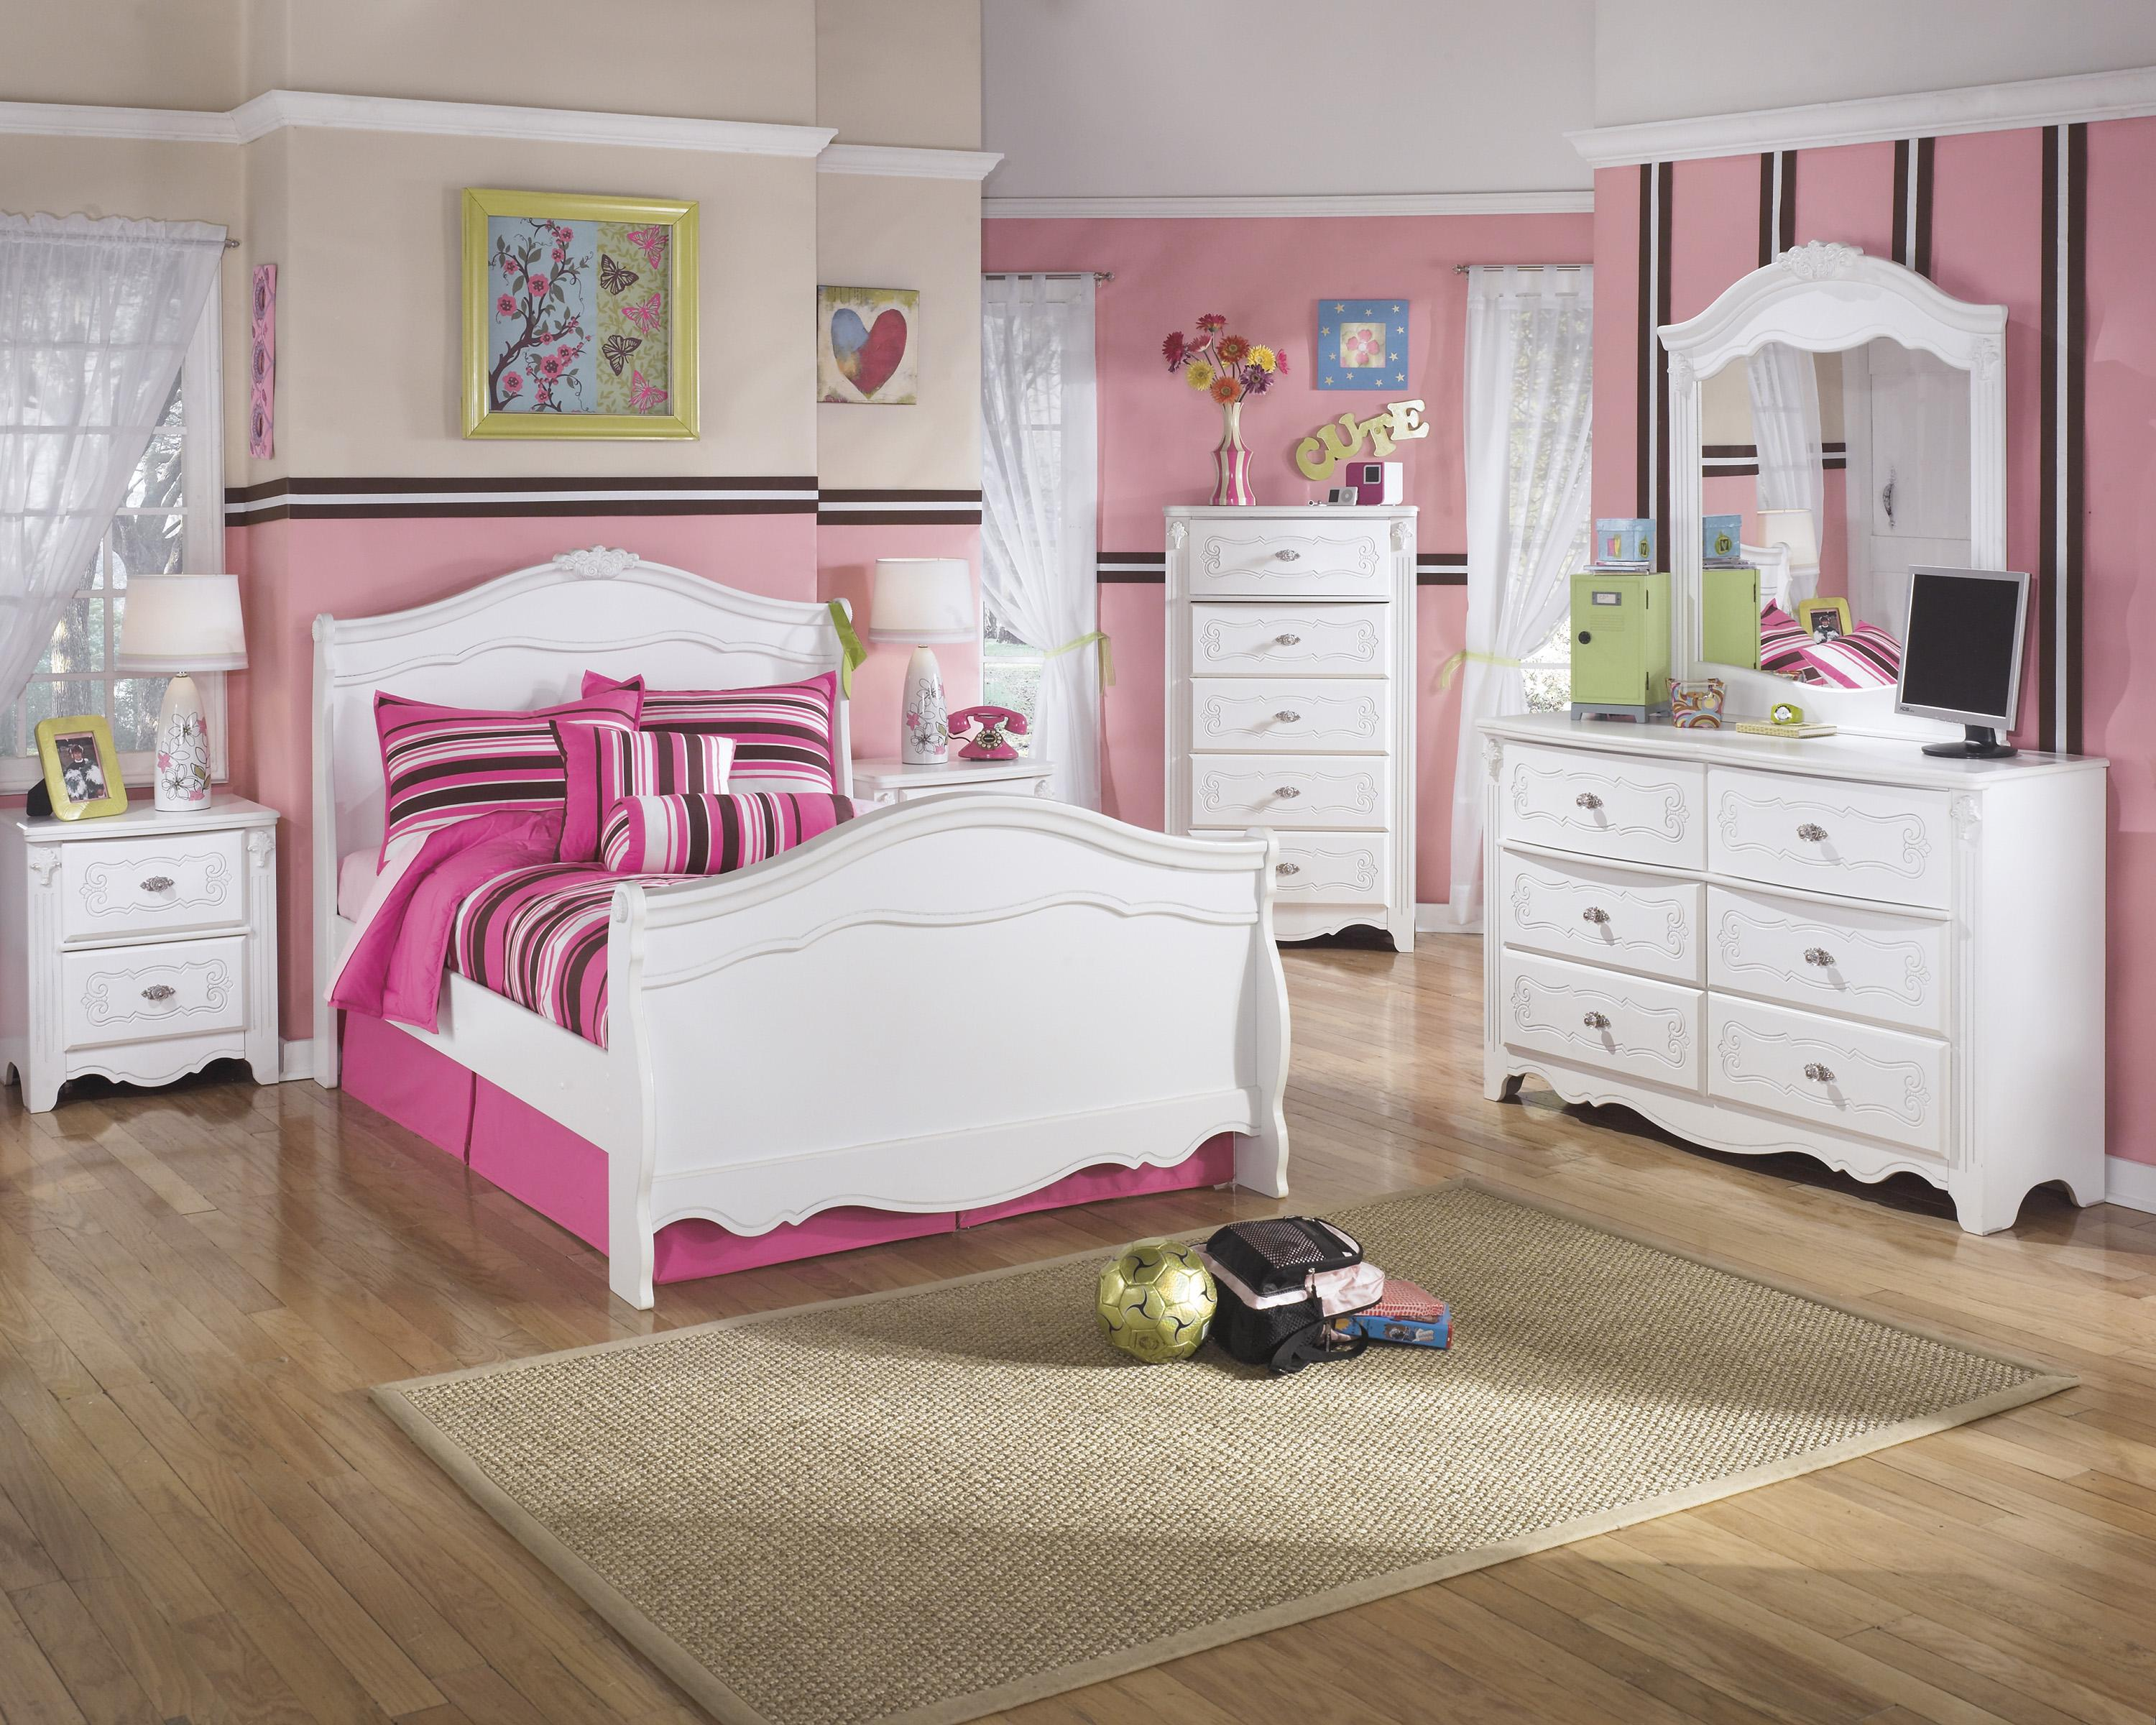 Signature Design by Ashley Exquisite Full Bedroom Group - Item Number: B188 F Bedroom Group 1